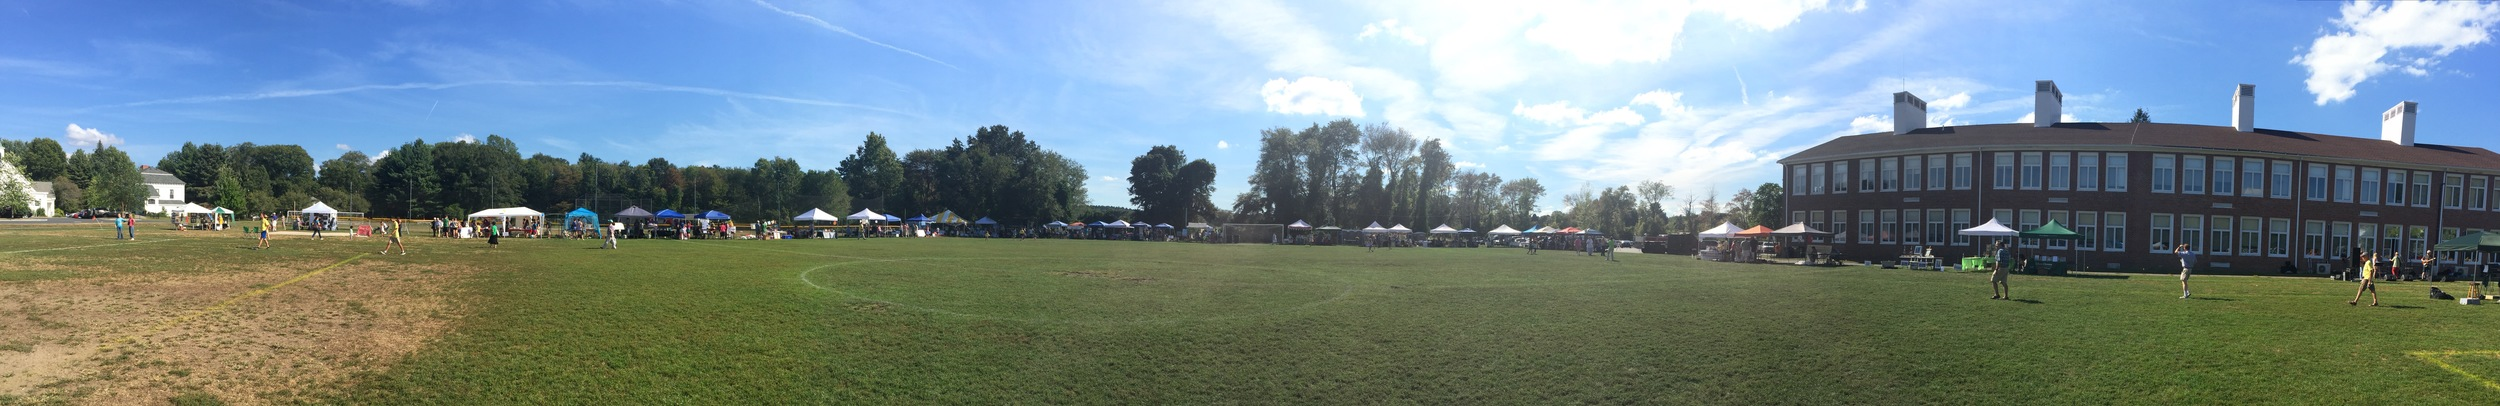 Panoramic view of the Fair, held on the athletic fields of the Town Building.